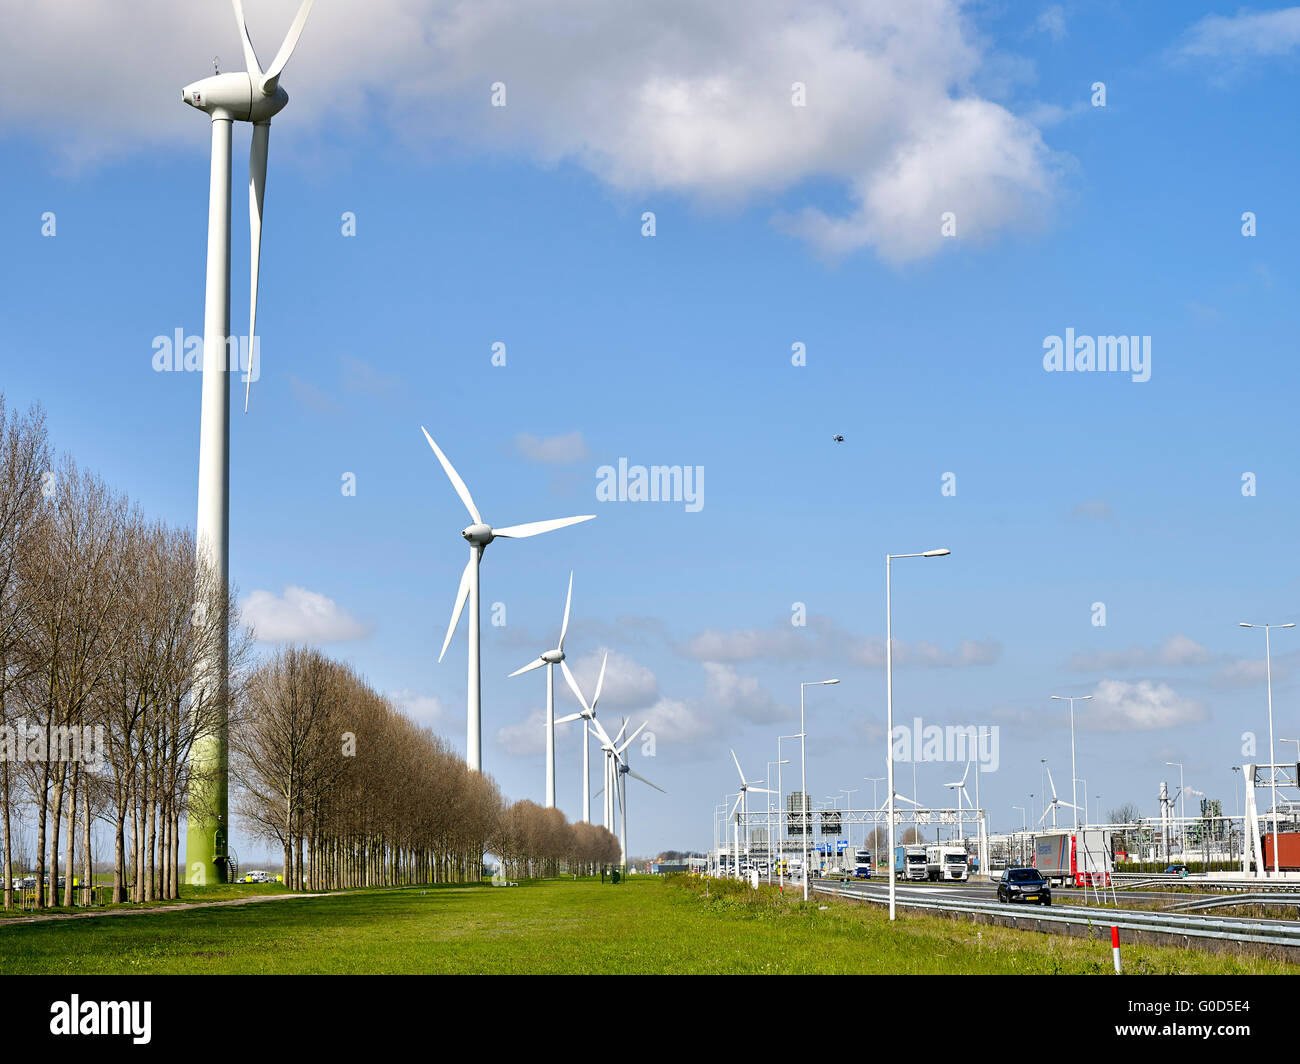 Contrast between sustainable industry and polluting industry. Wind turbine near Europoort, Rotterdam, Netherlands Stock Photo